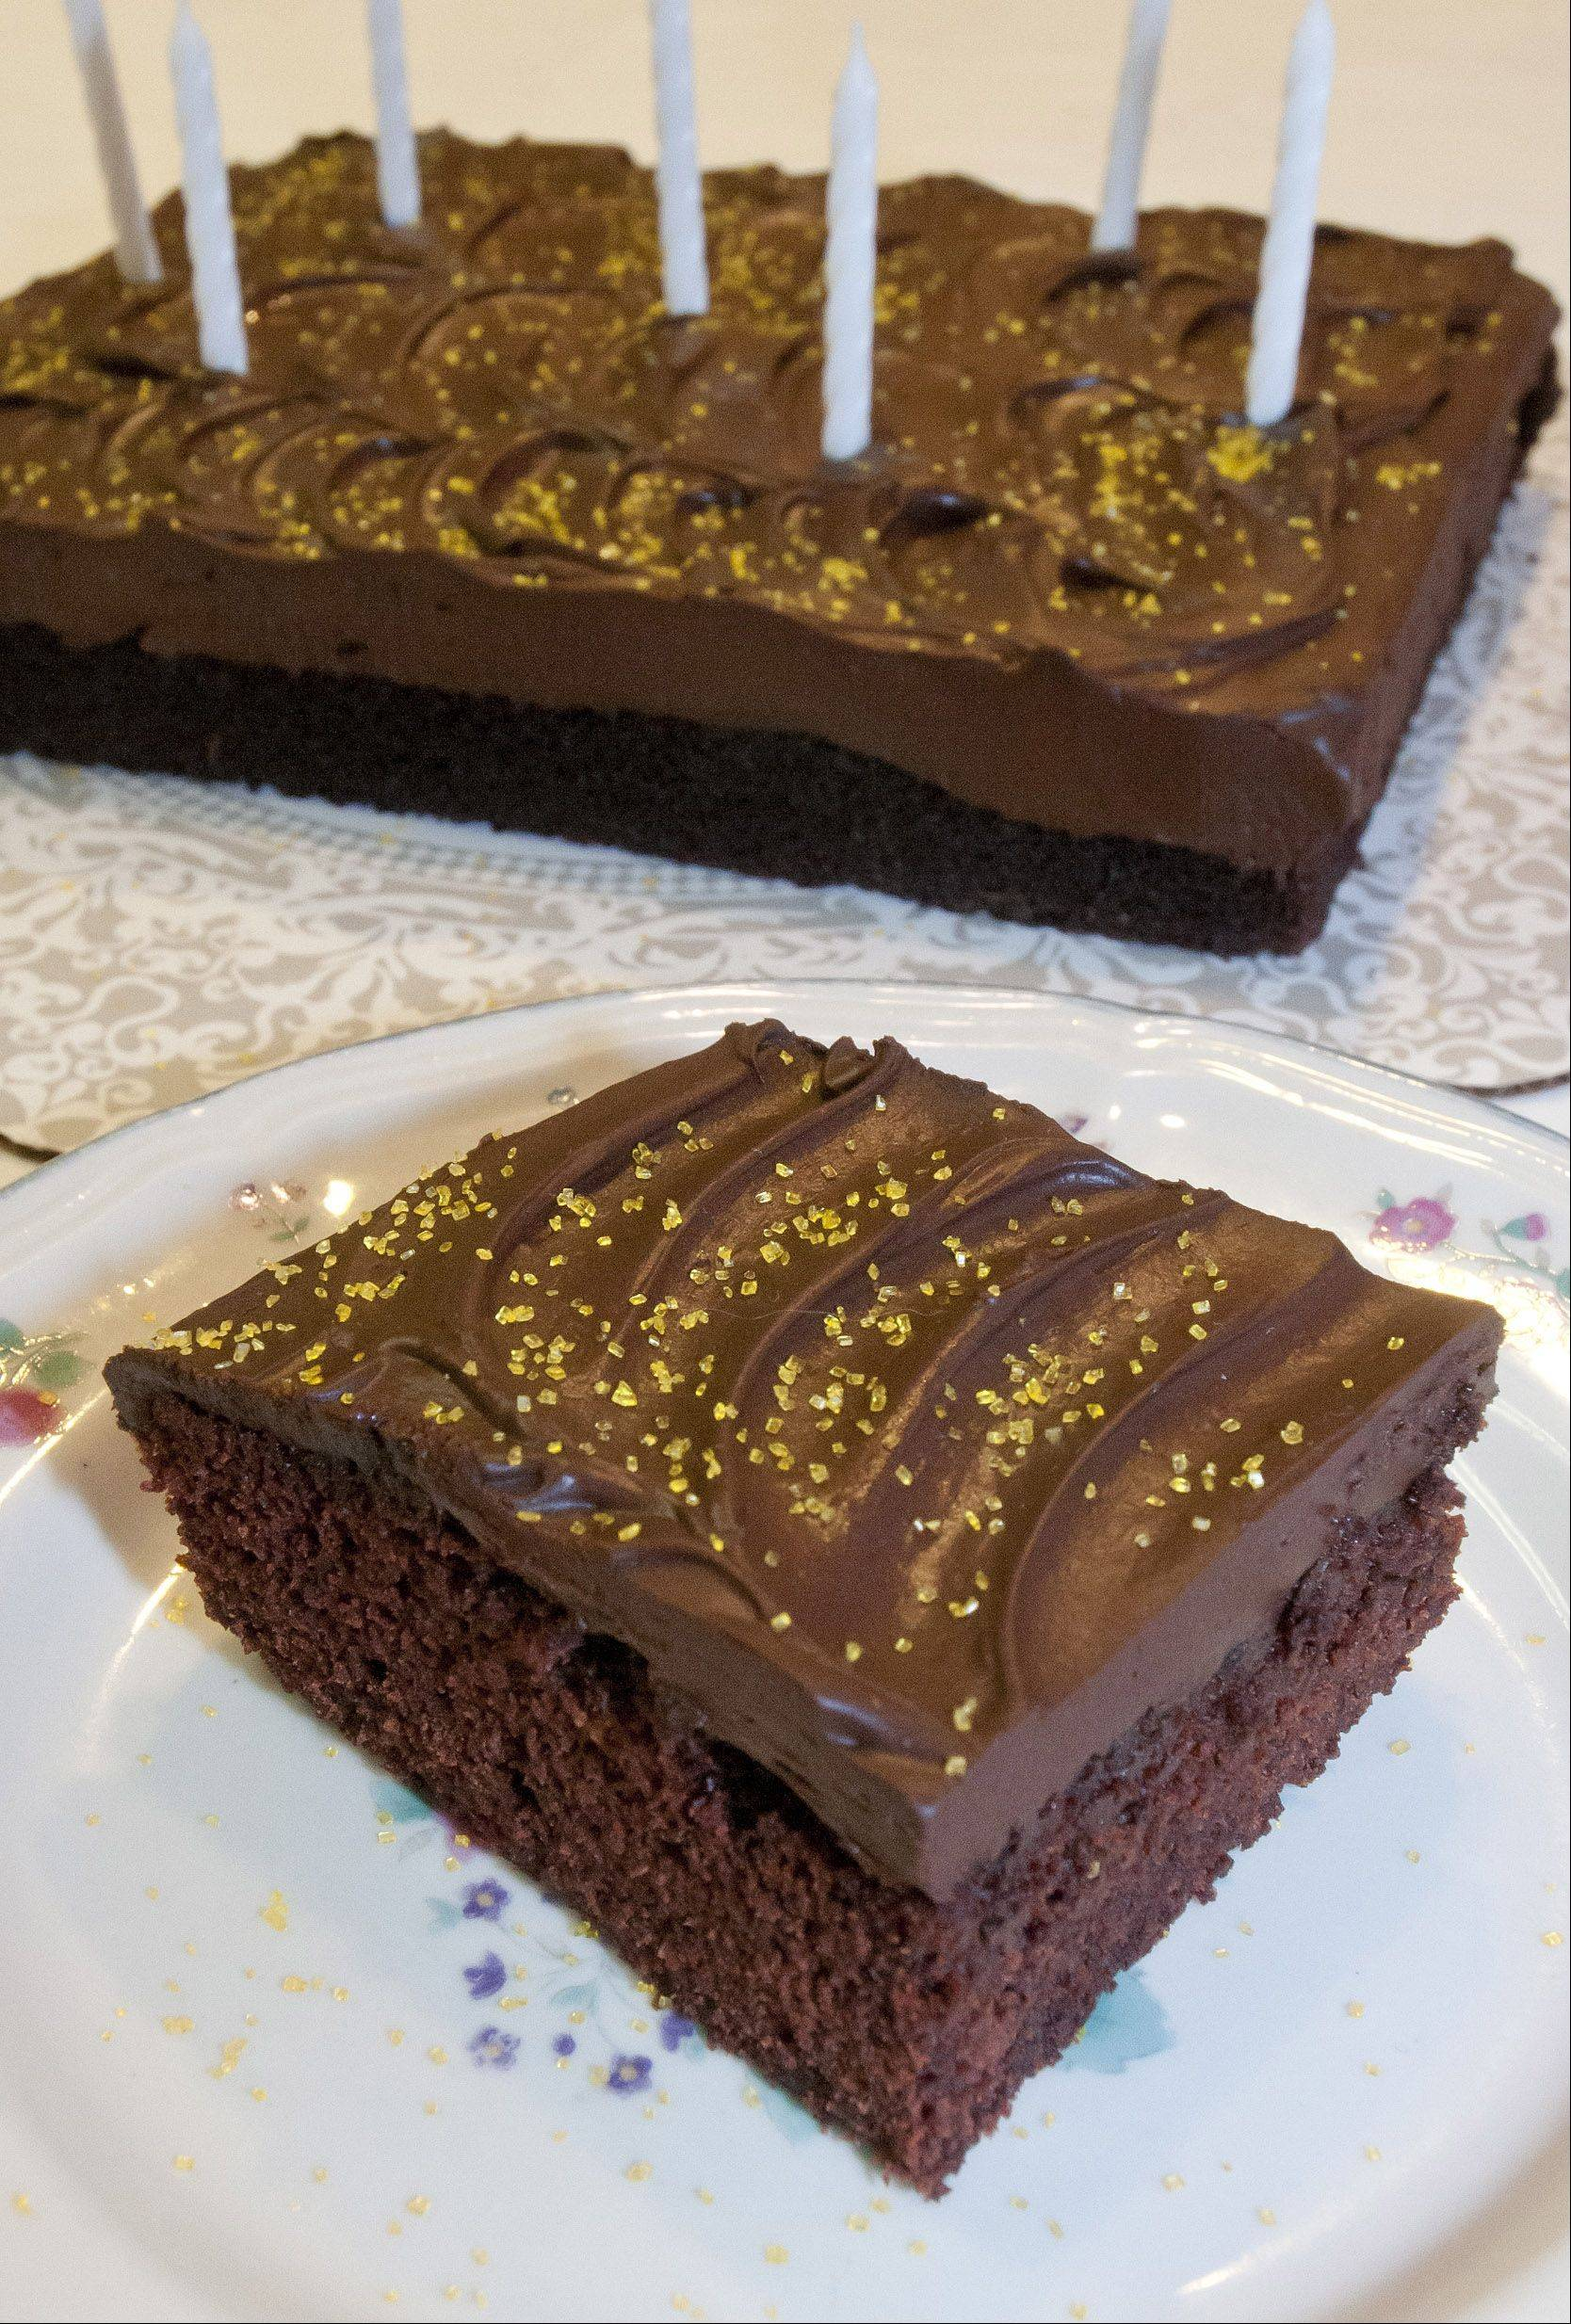 Annie Overboe tweaked her vegan chocolate cake so it can now be enjoyed by people who are gluten intolerant.